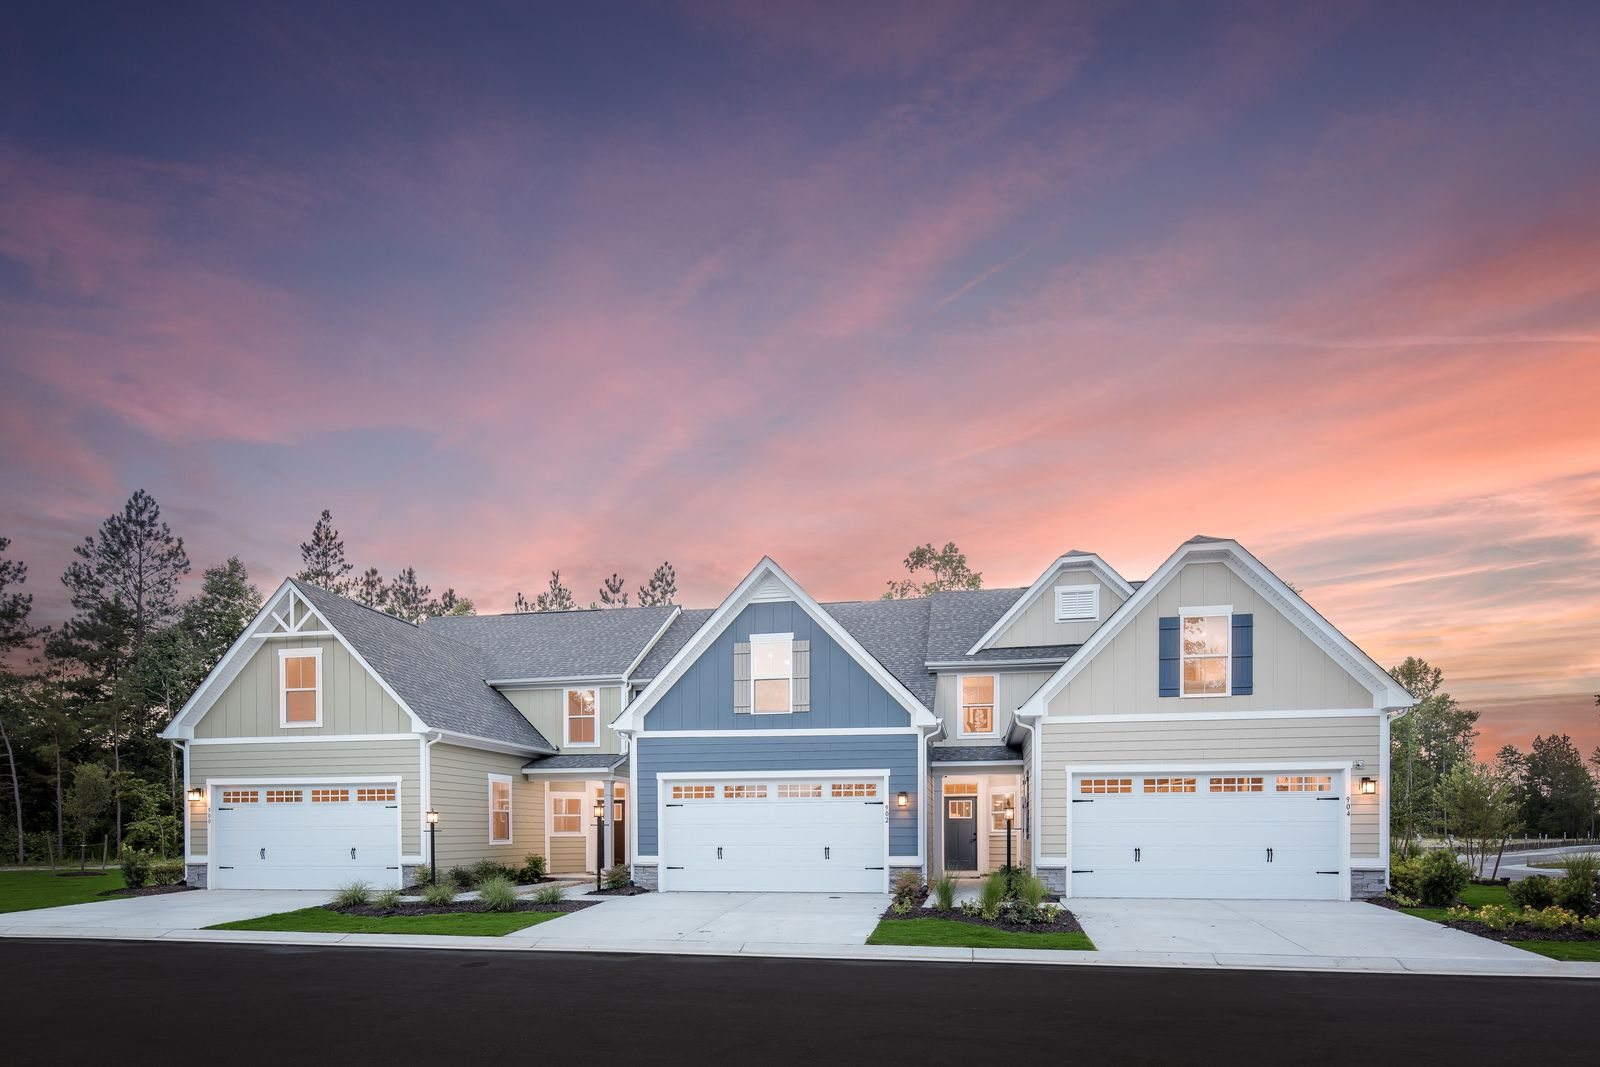 WELCOME TO THE VILLAS AT GUN CREEK:The lowest-priced new homes on Grand Island with 2-car garages in a low-maintenance community.Click here toschedule your in-person or virtual appointment today!